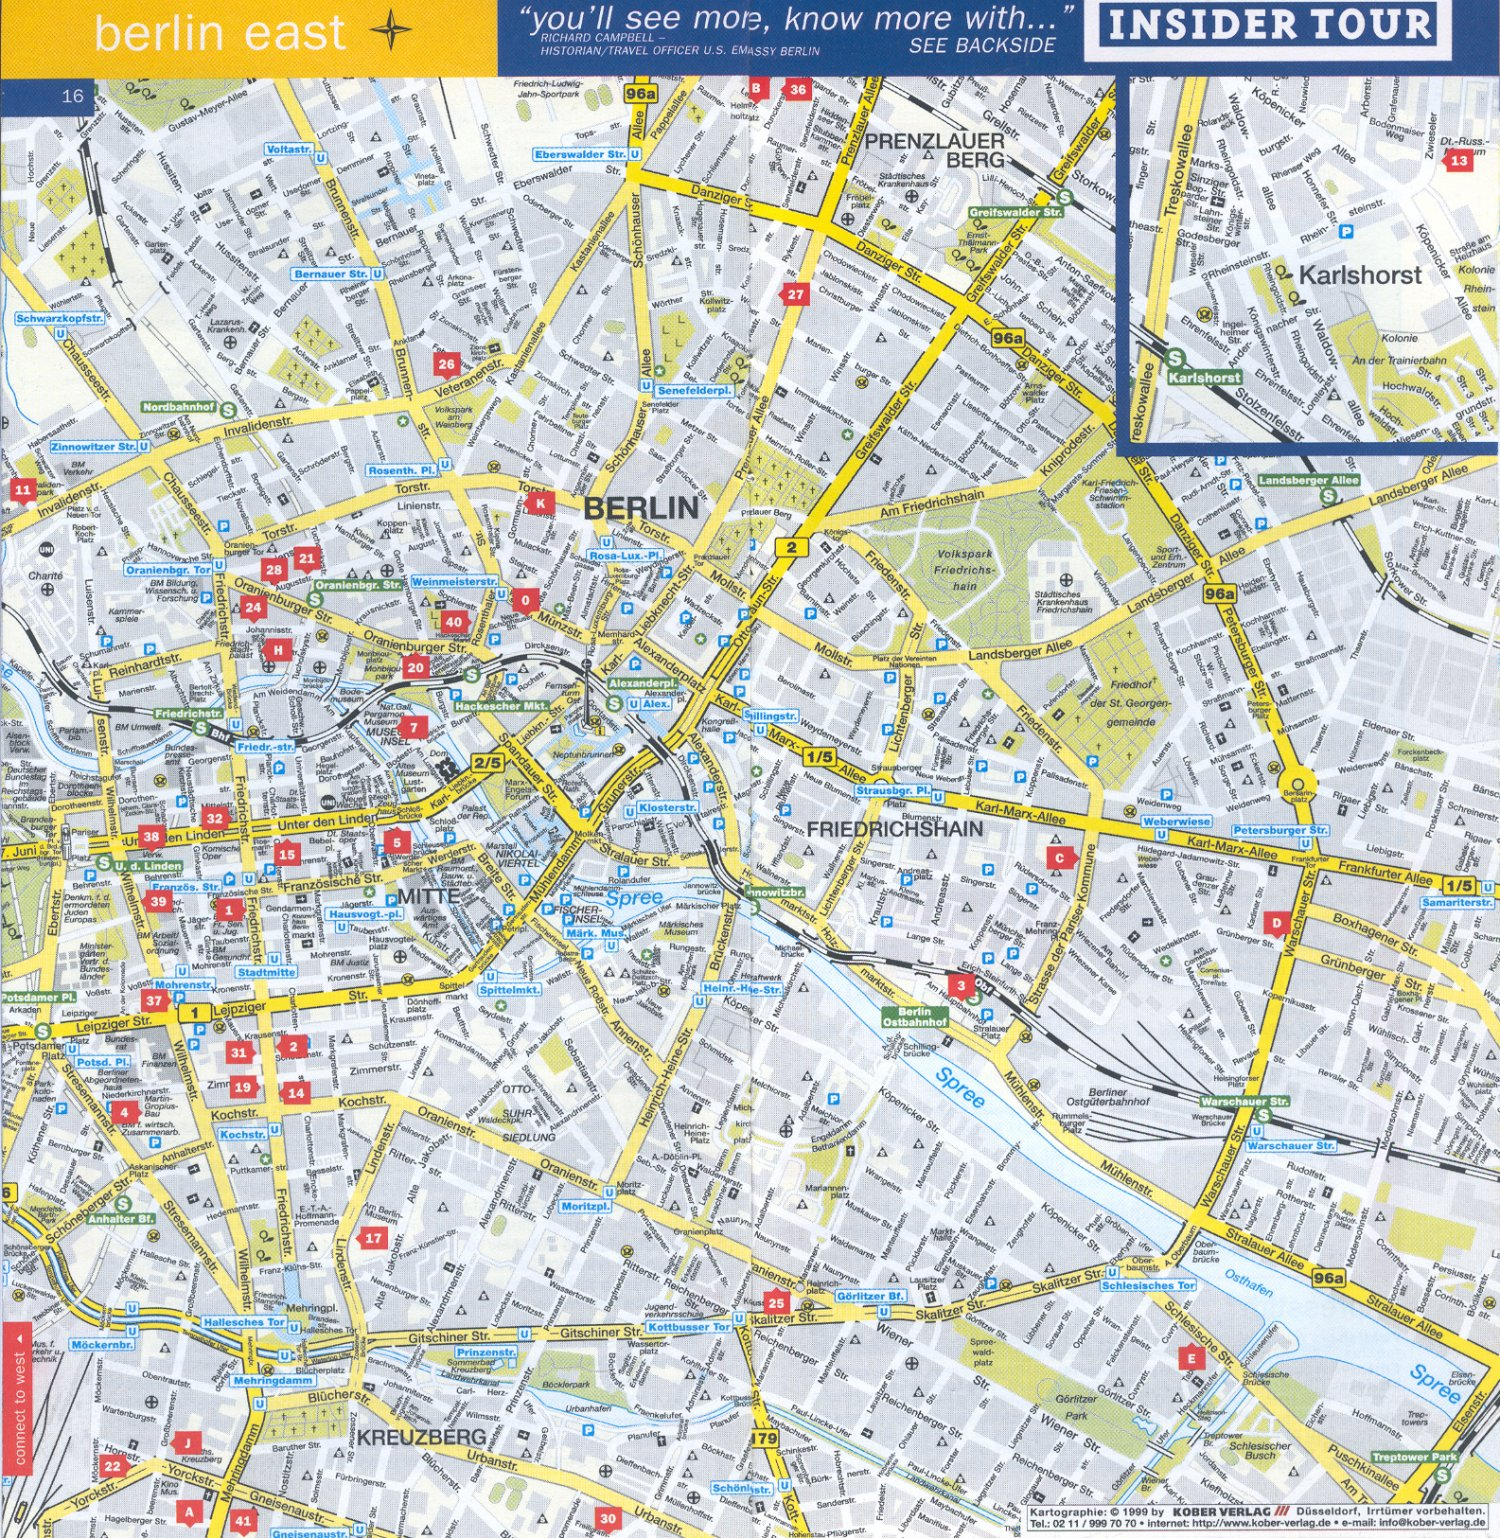 Guide to Bach Tour: Berlin - Maps